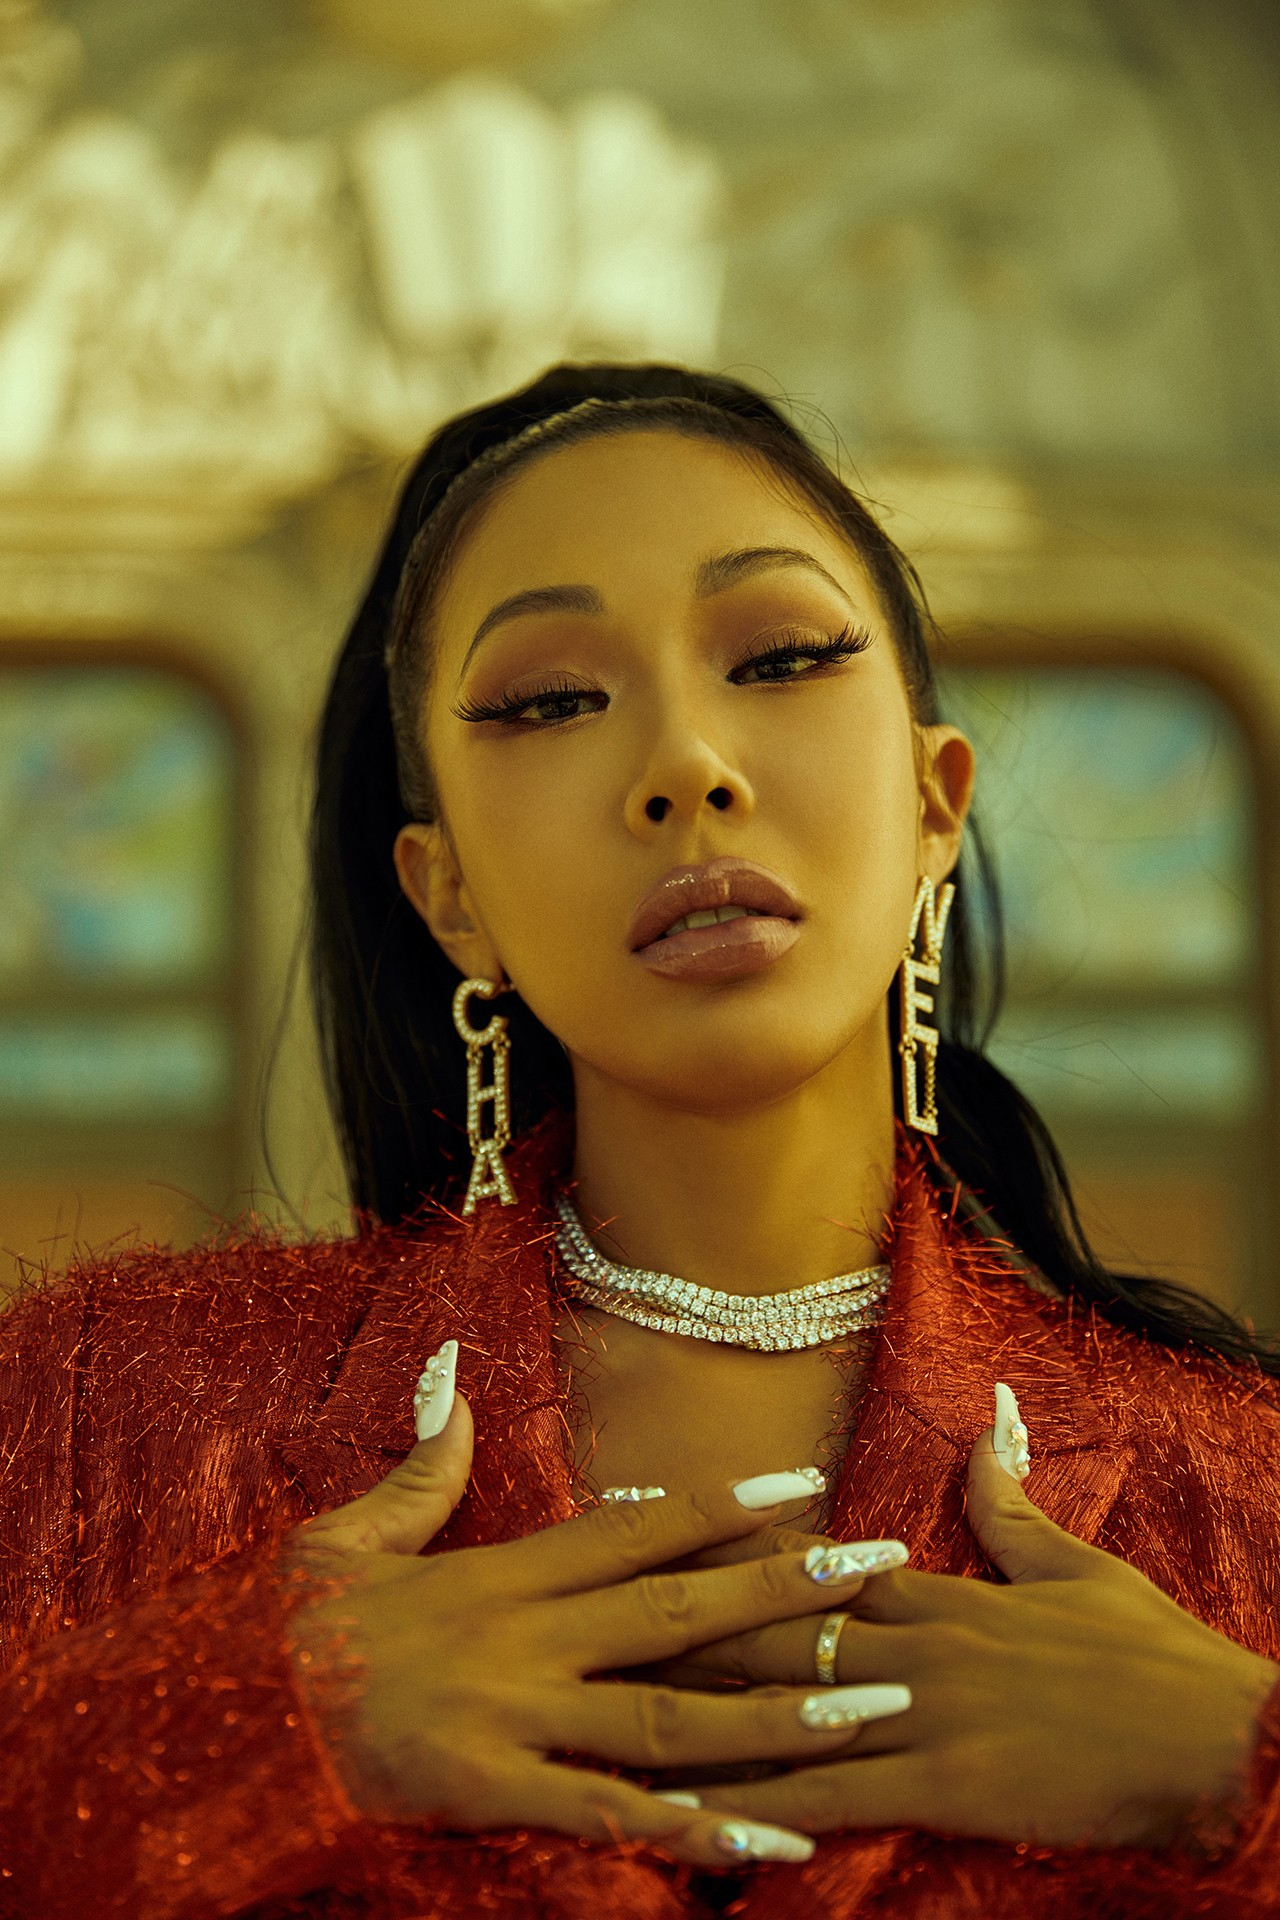 Jessi Jessica H.O Korean American Rapper Hip Hop Music Artist P NATION Chanel Logo Earrings Red Jacket Blazer White Nails